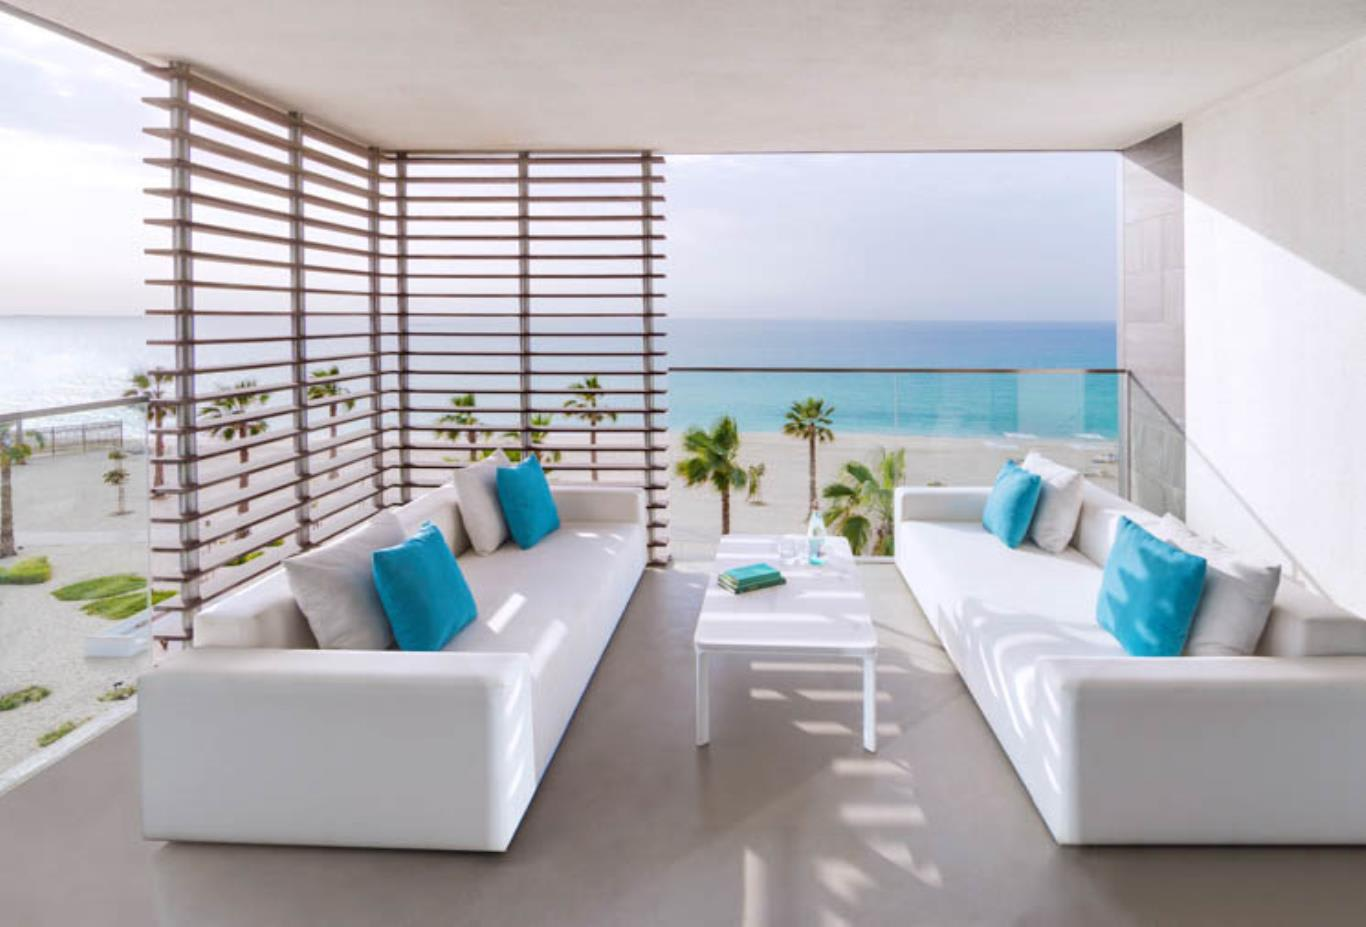 Luux suite balcony beach view